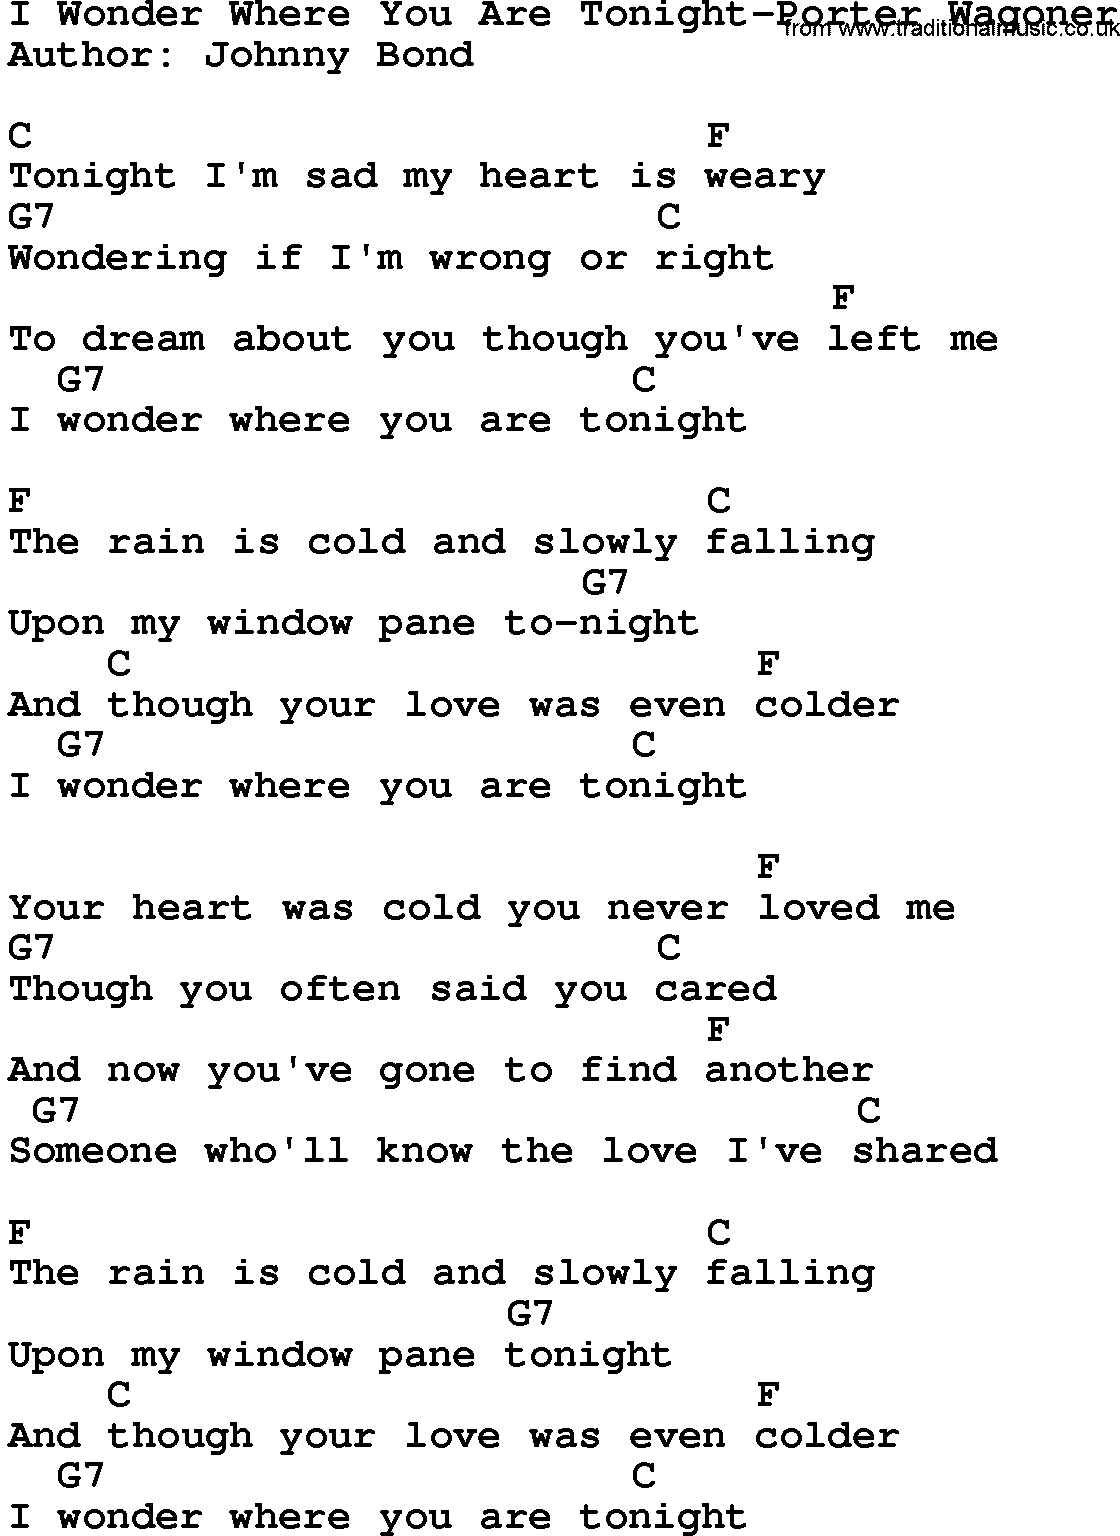 Country musici wonder where you are tonight porter wagoner lyrics country musici wonder where you are tonight porter wagoner lyrics and chords hexwebz Image collections